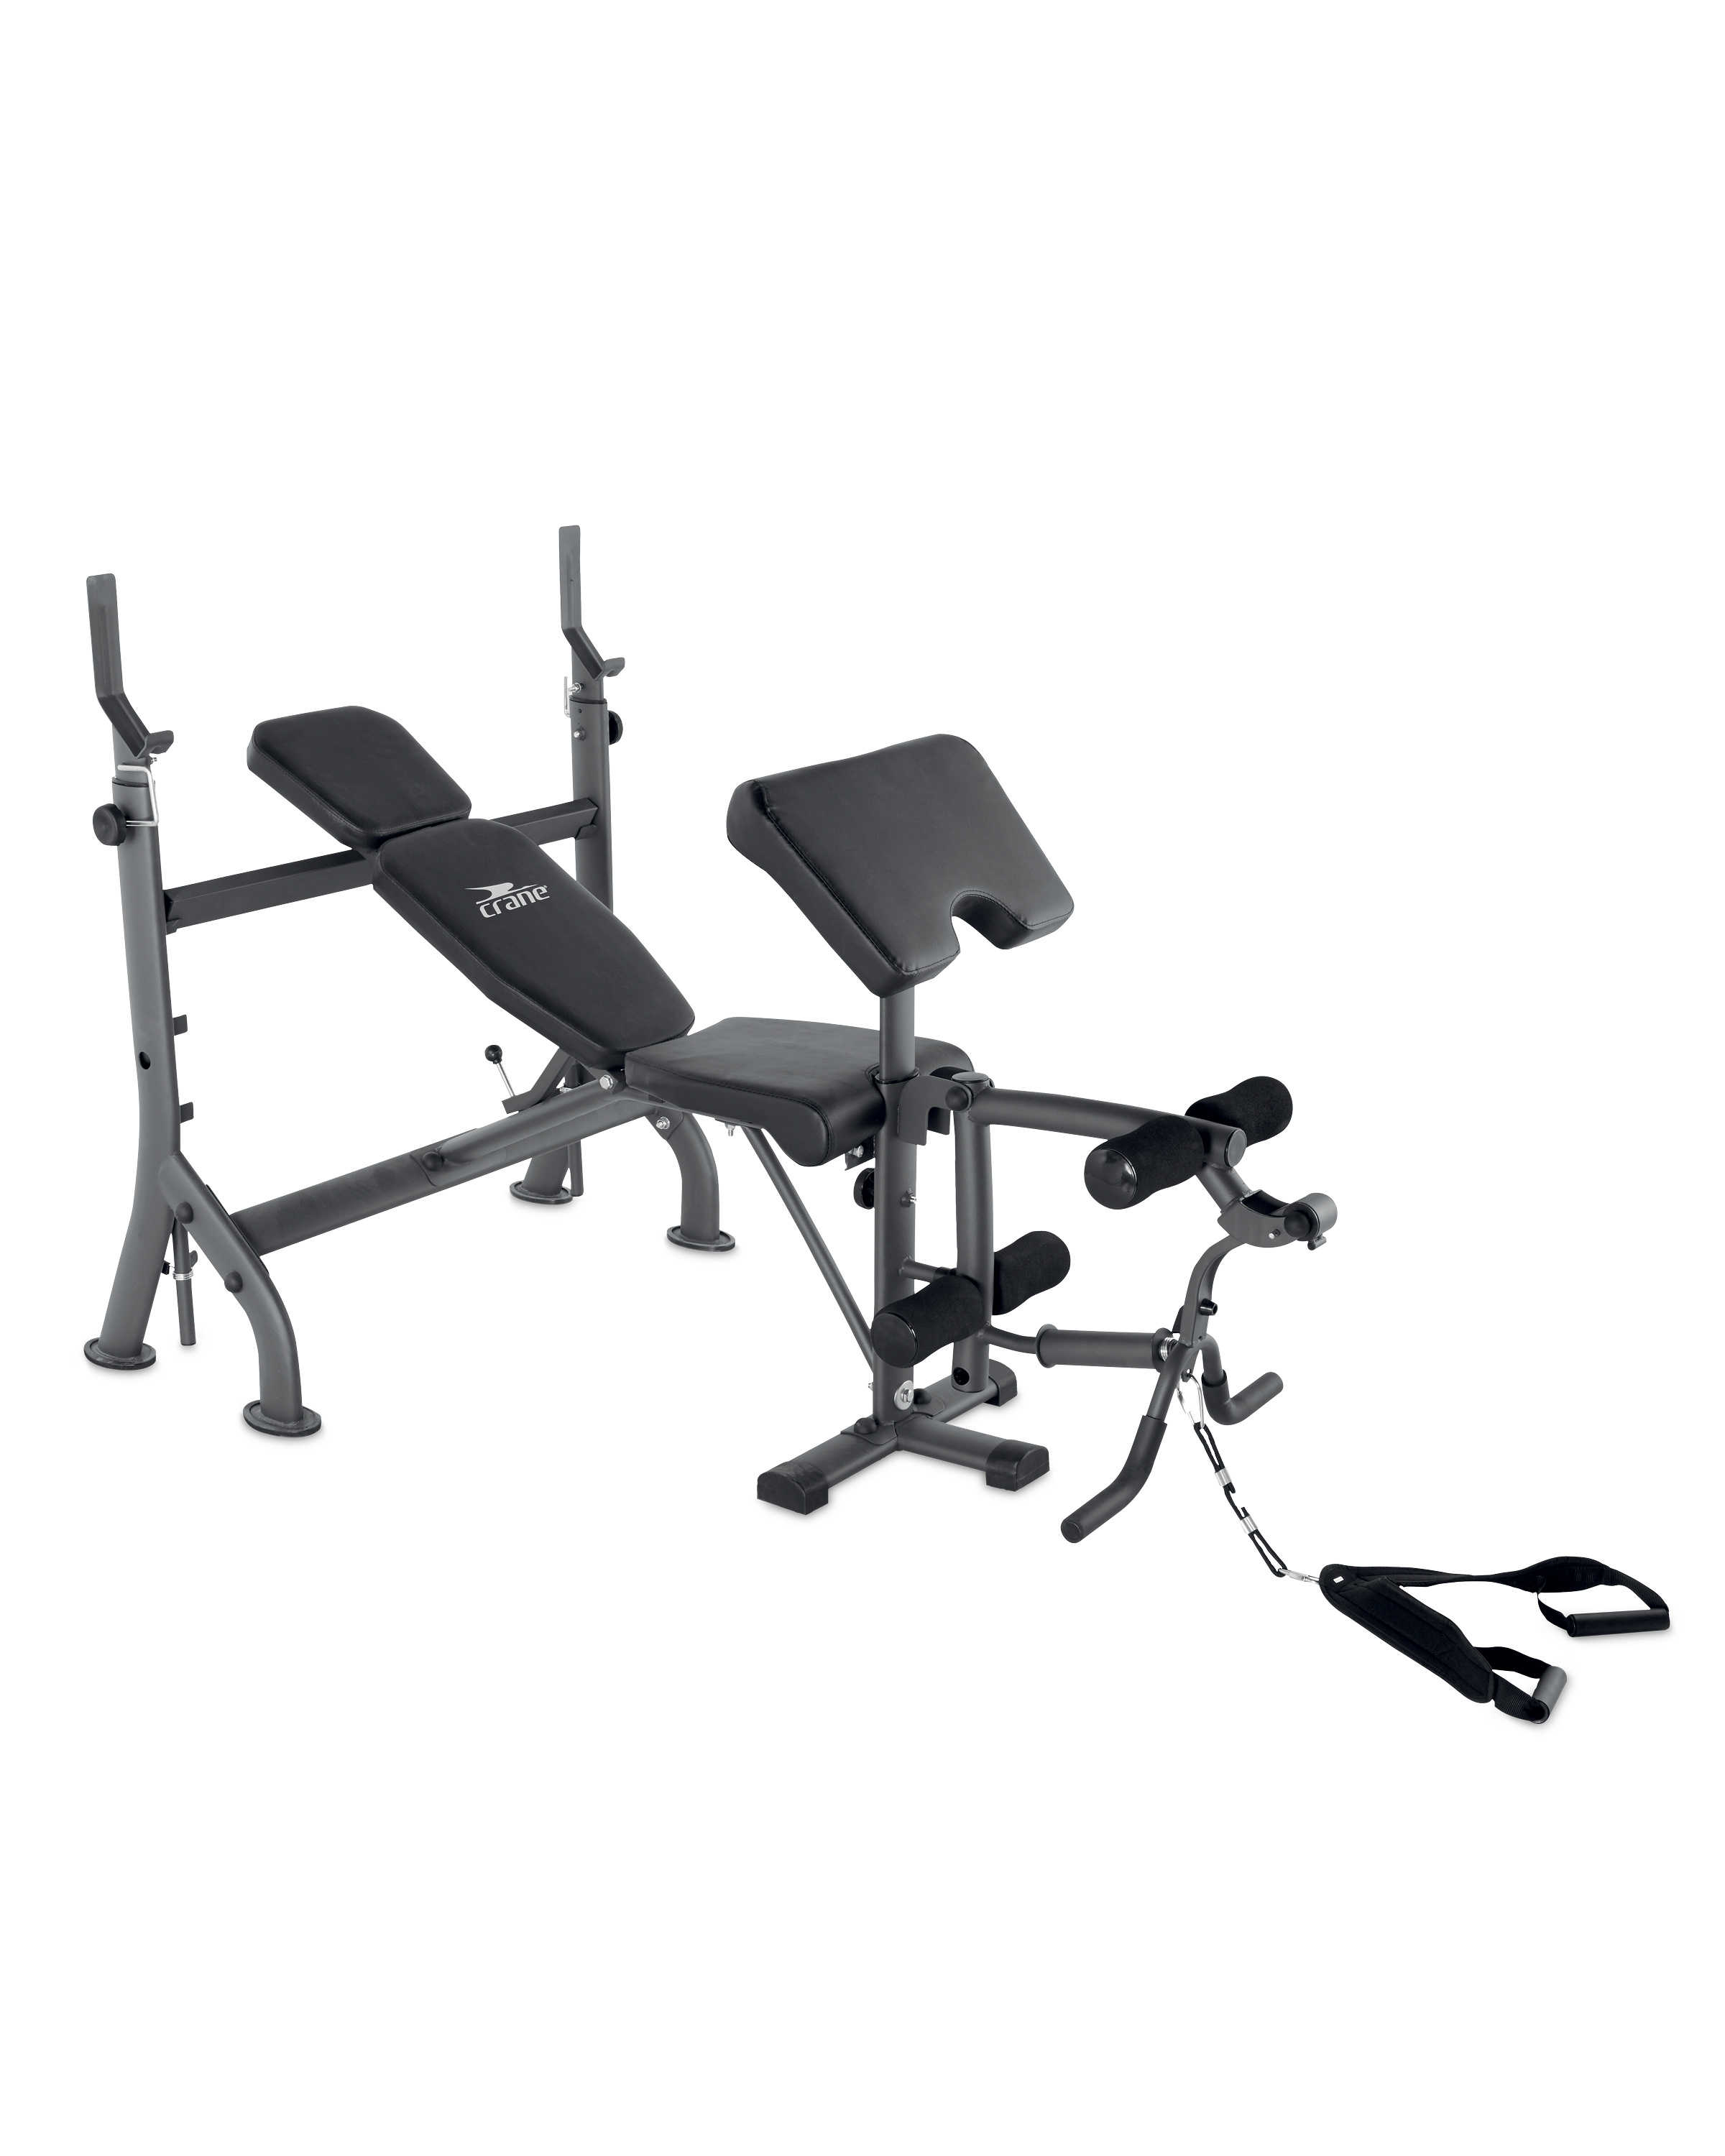 https://cdn.aldi-digital.co.uk/Weight-Lifting-Bench-A.jpg?o=4HOi8UFn0UPPsmjp2K%40Osh3YGO4j&V=tcFH&p=2&q=50